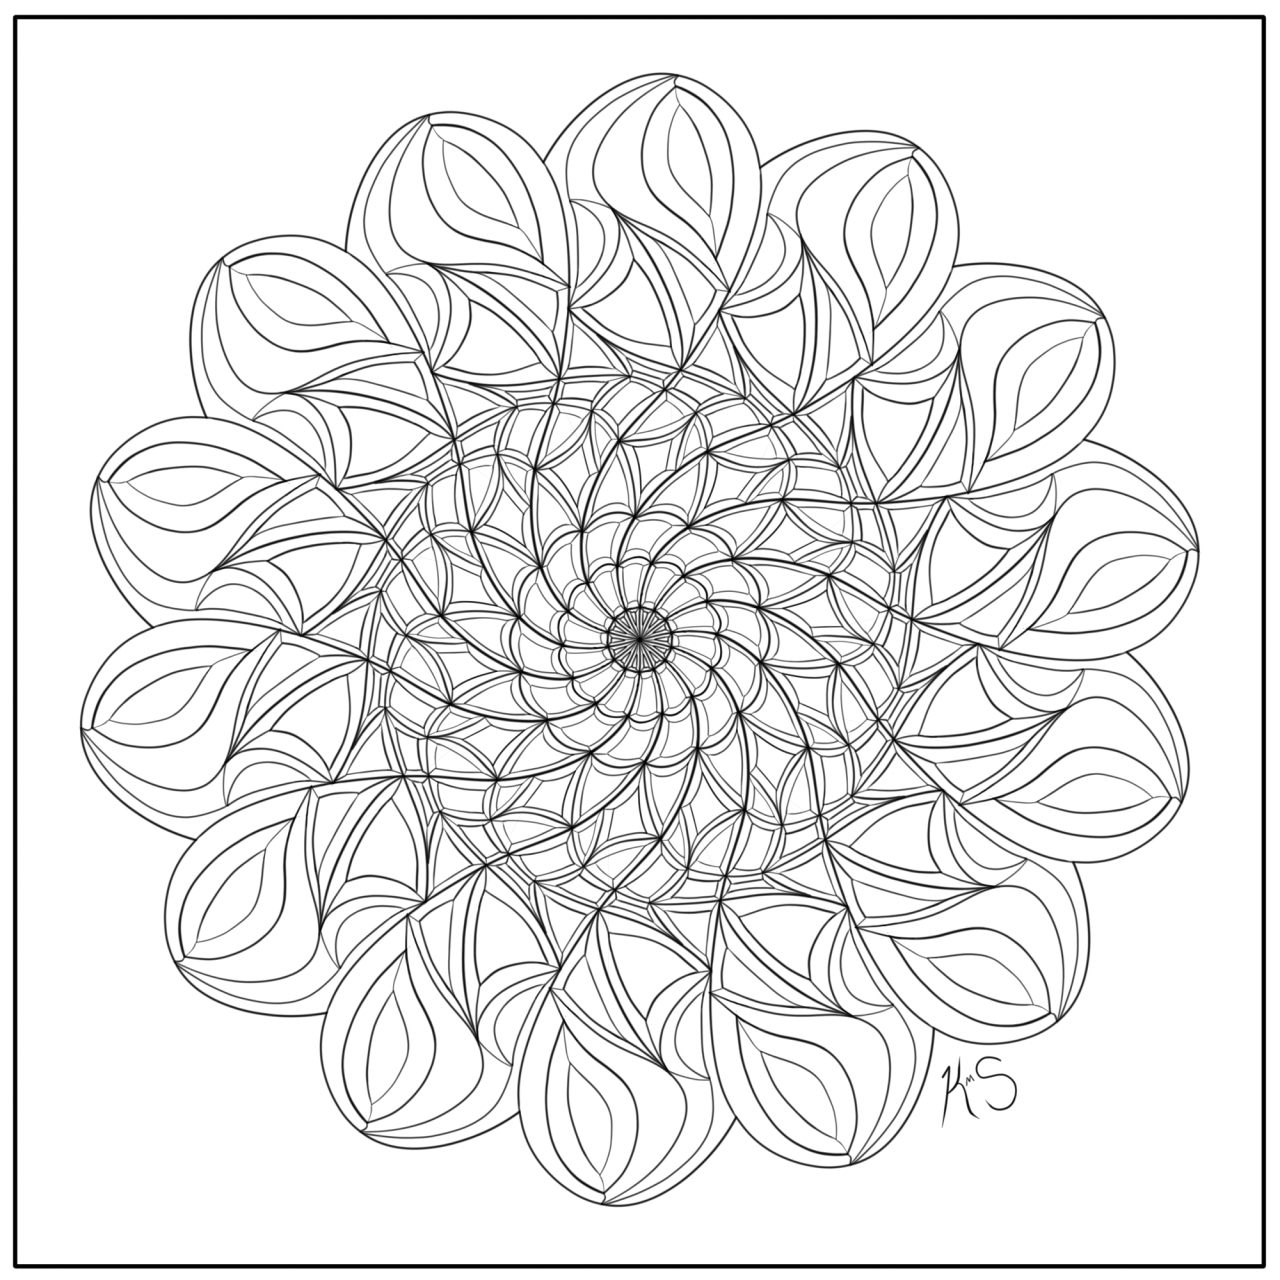 relaxing coloring pages relaxation coloring pages coloring home pages relaxing coloring